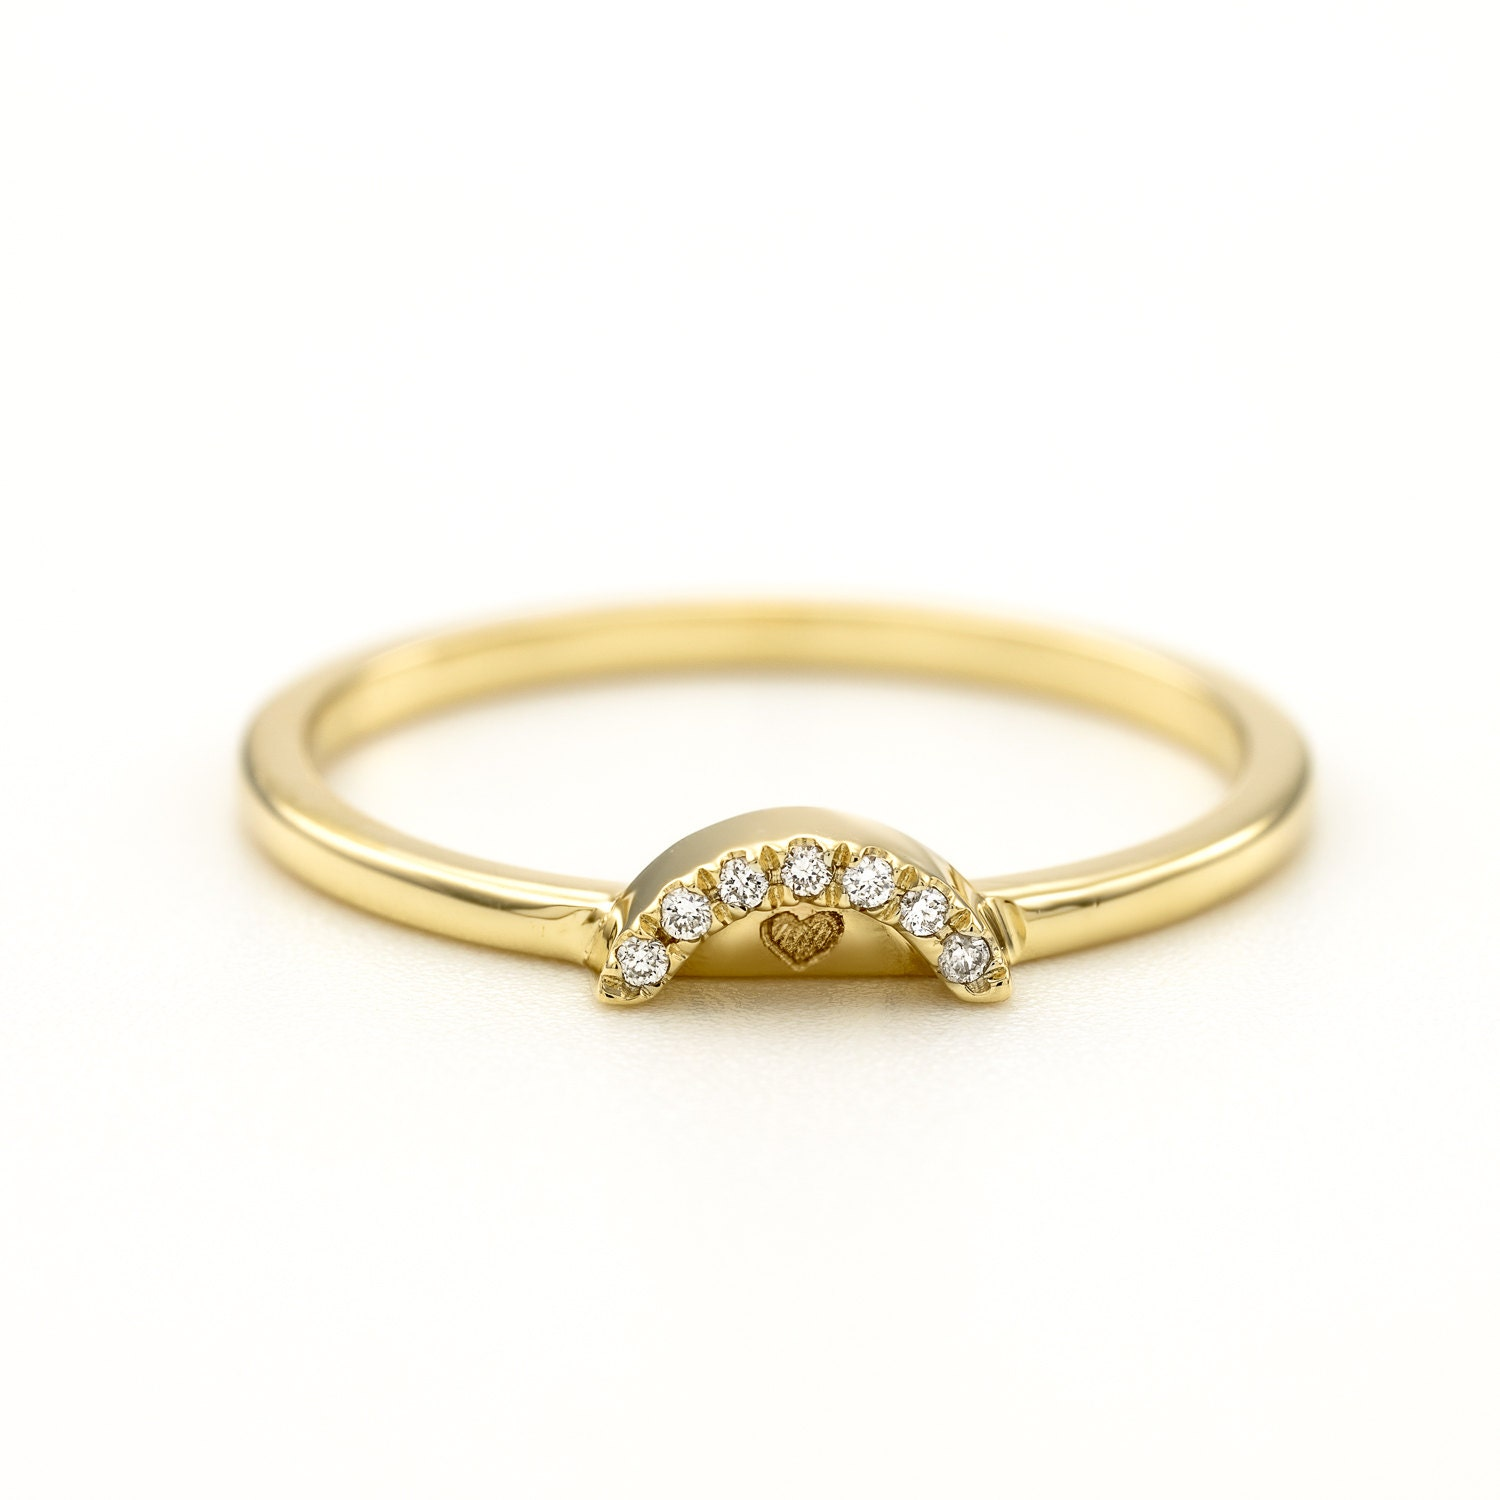 nce svatba birthday thin four ivatele pinterest wedding minimal for u bands stone na band gifts bella st simple n rose pin huang her stacking ring gold dainty